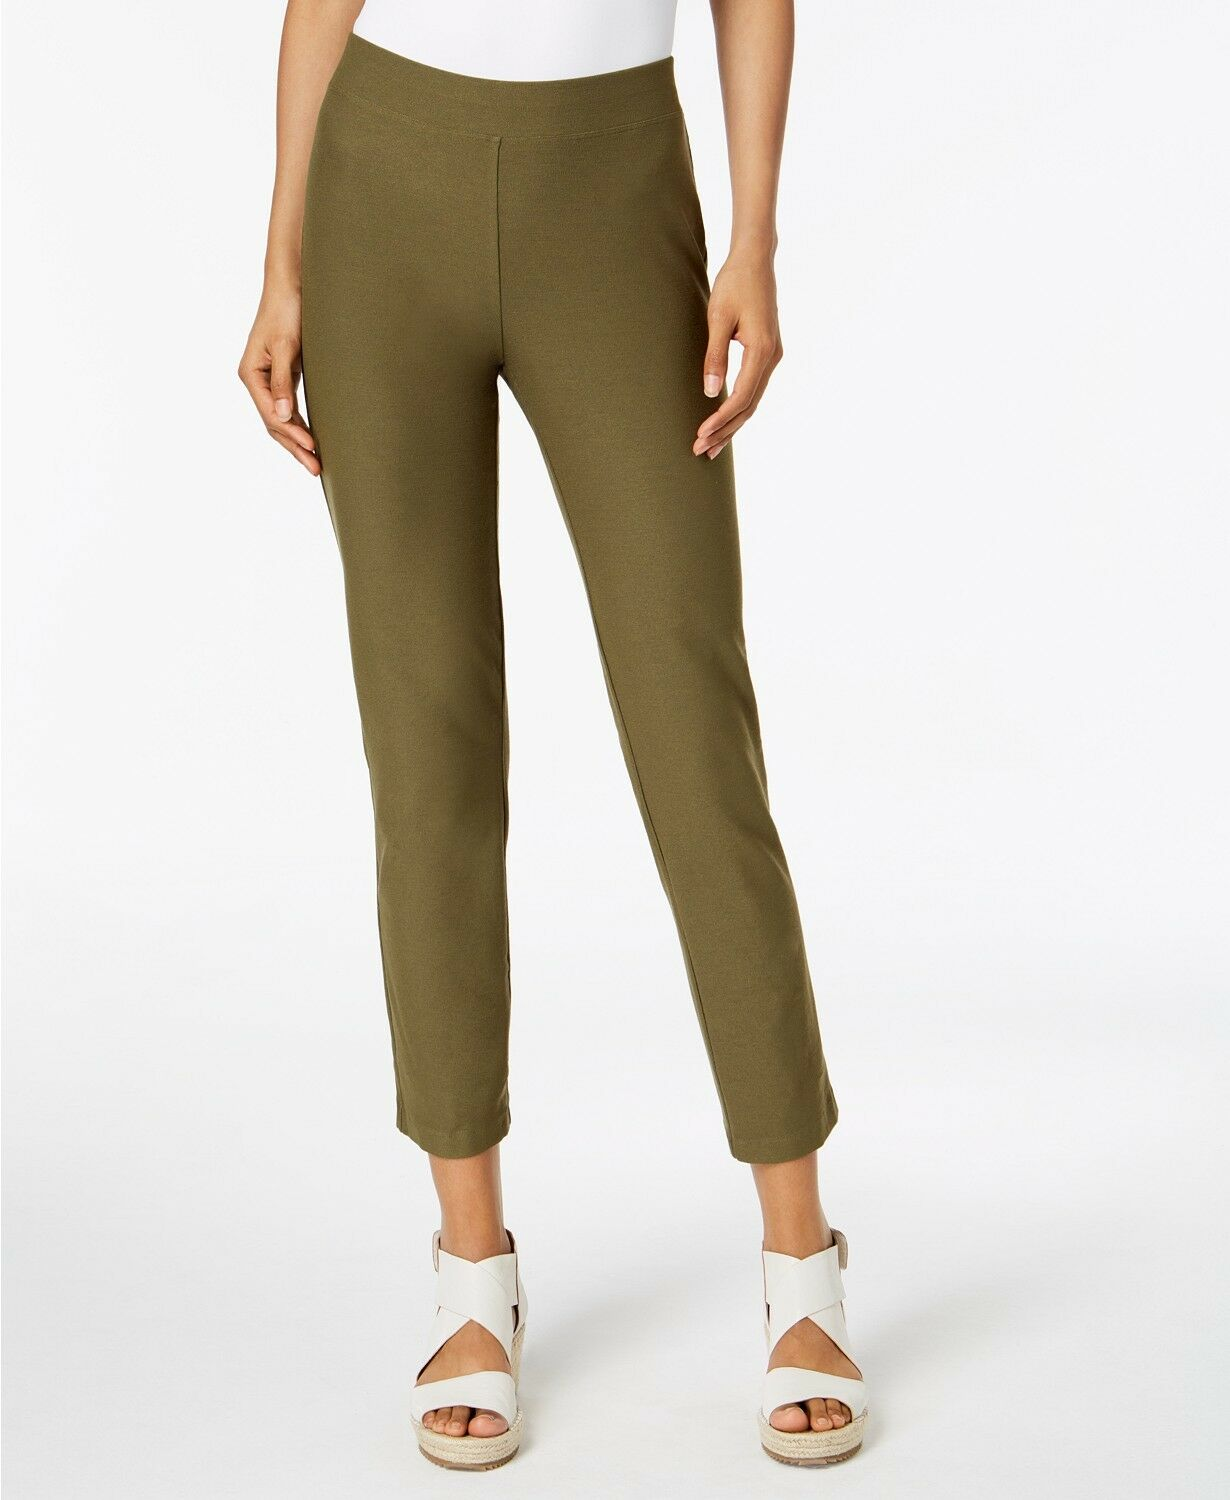 Eileen Fisher Washable Stretch Crepe Slim Ankle Pant, PS, Olive, NWT